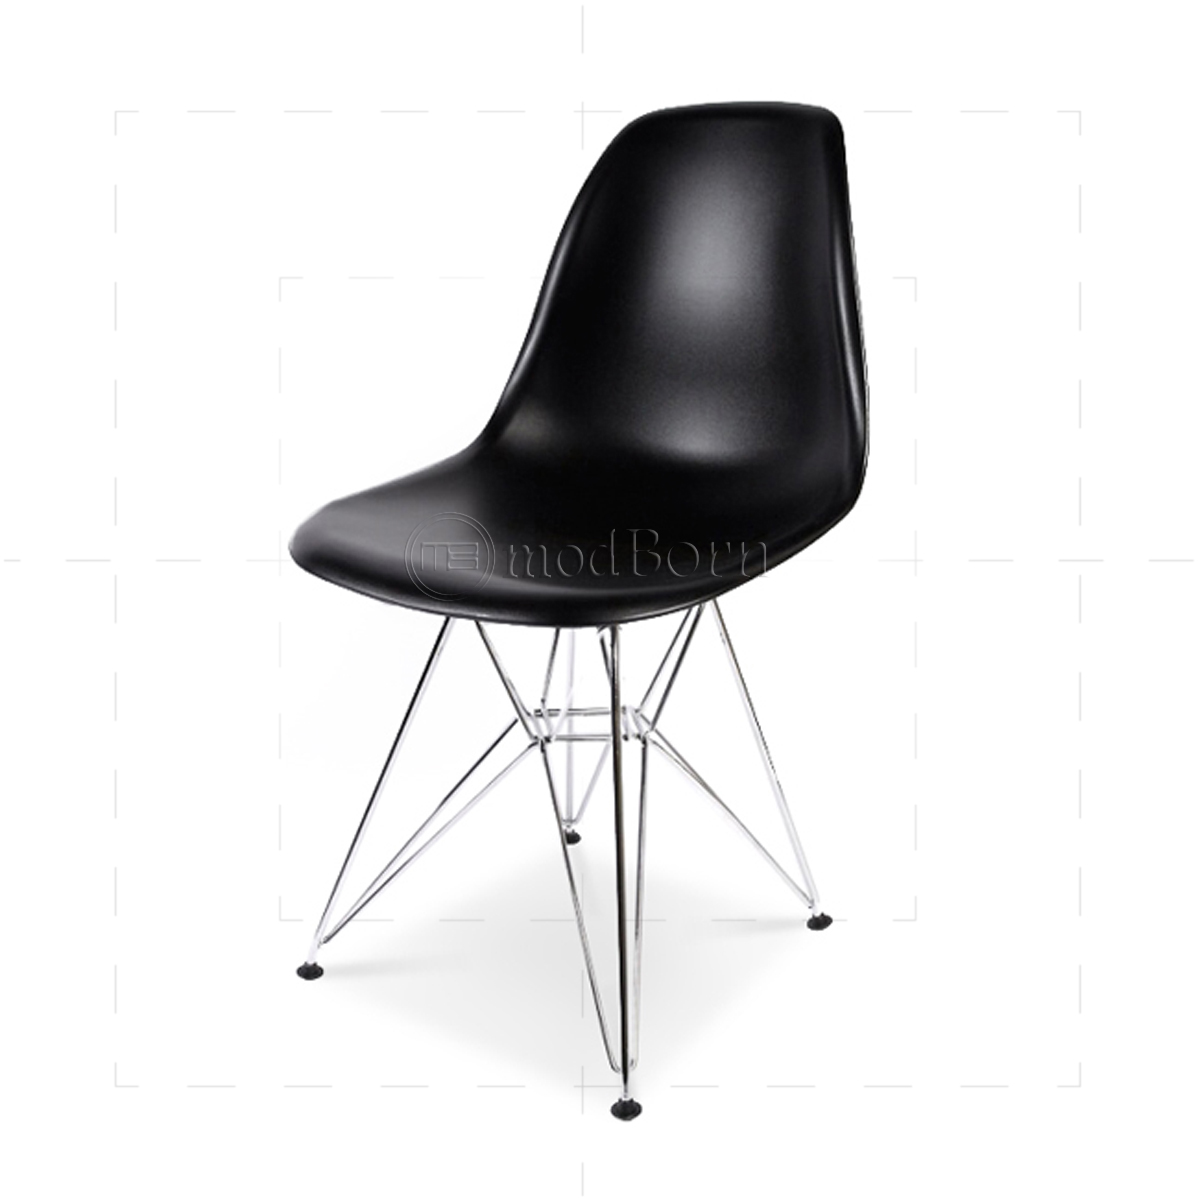 eames style dining dsr eiffel chair black replica. Black Bedroom Furniture Sets. Home Design Ideas